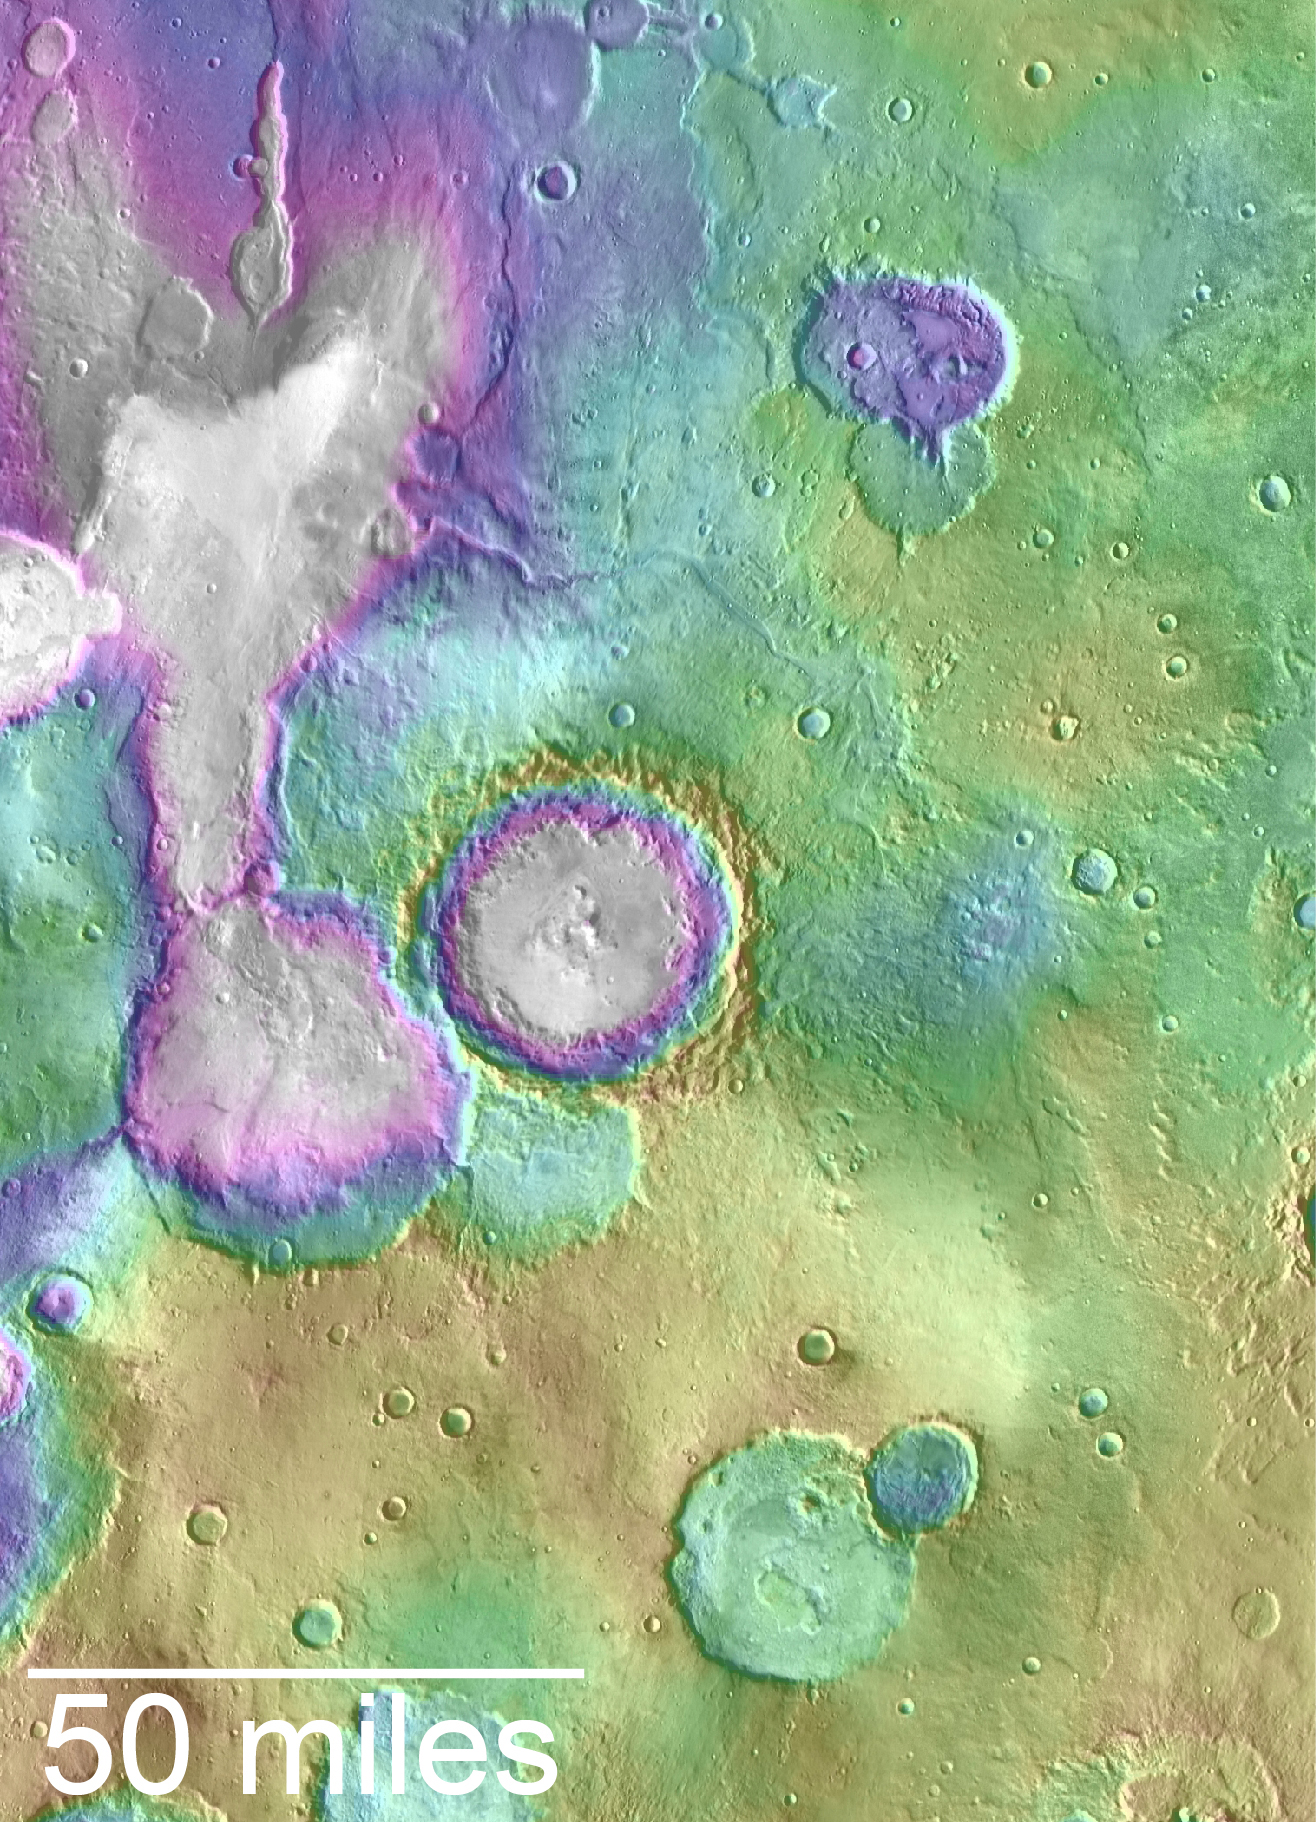 """Valleys much younger than well-known ancient valley networks on Mars are evident near the informally named """"Heart Lake"""" on Mars. This map presents color-coded topographical information overlaid onto a photo mosaic. Lower elevations are indicated with white and purple; higher elevations, yellow. - Image   Credits: NASA/JPL-Caltech/ASU"""